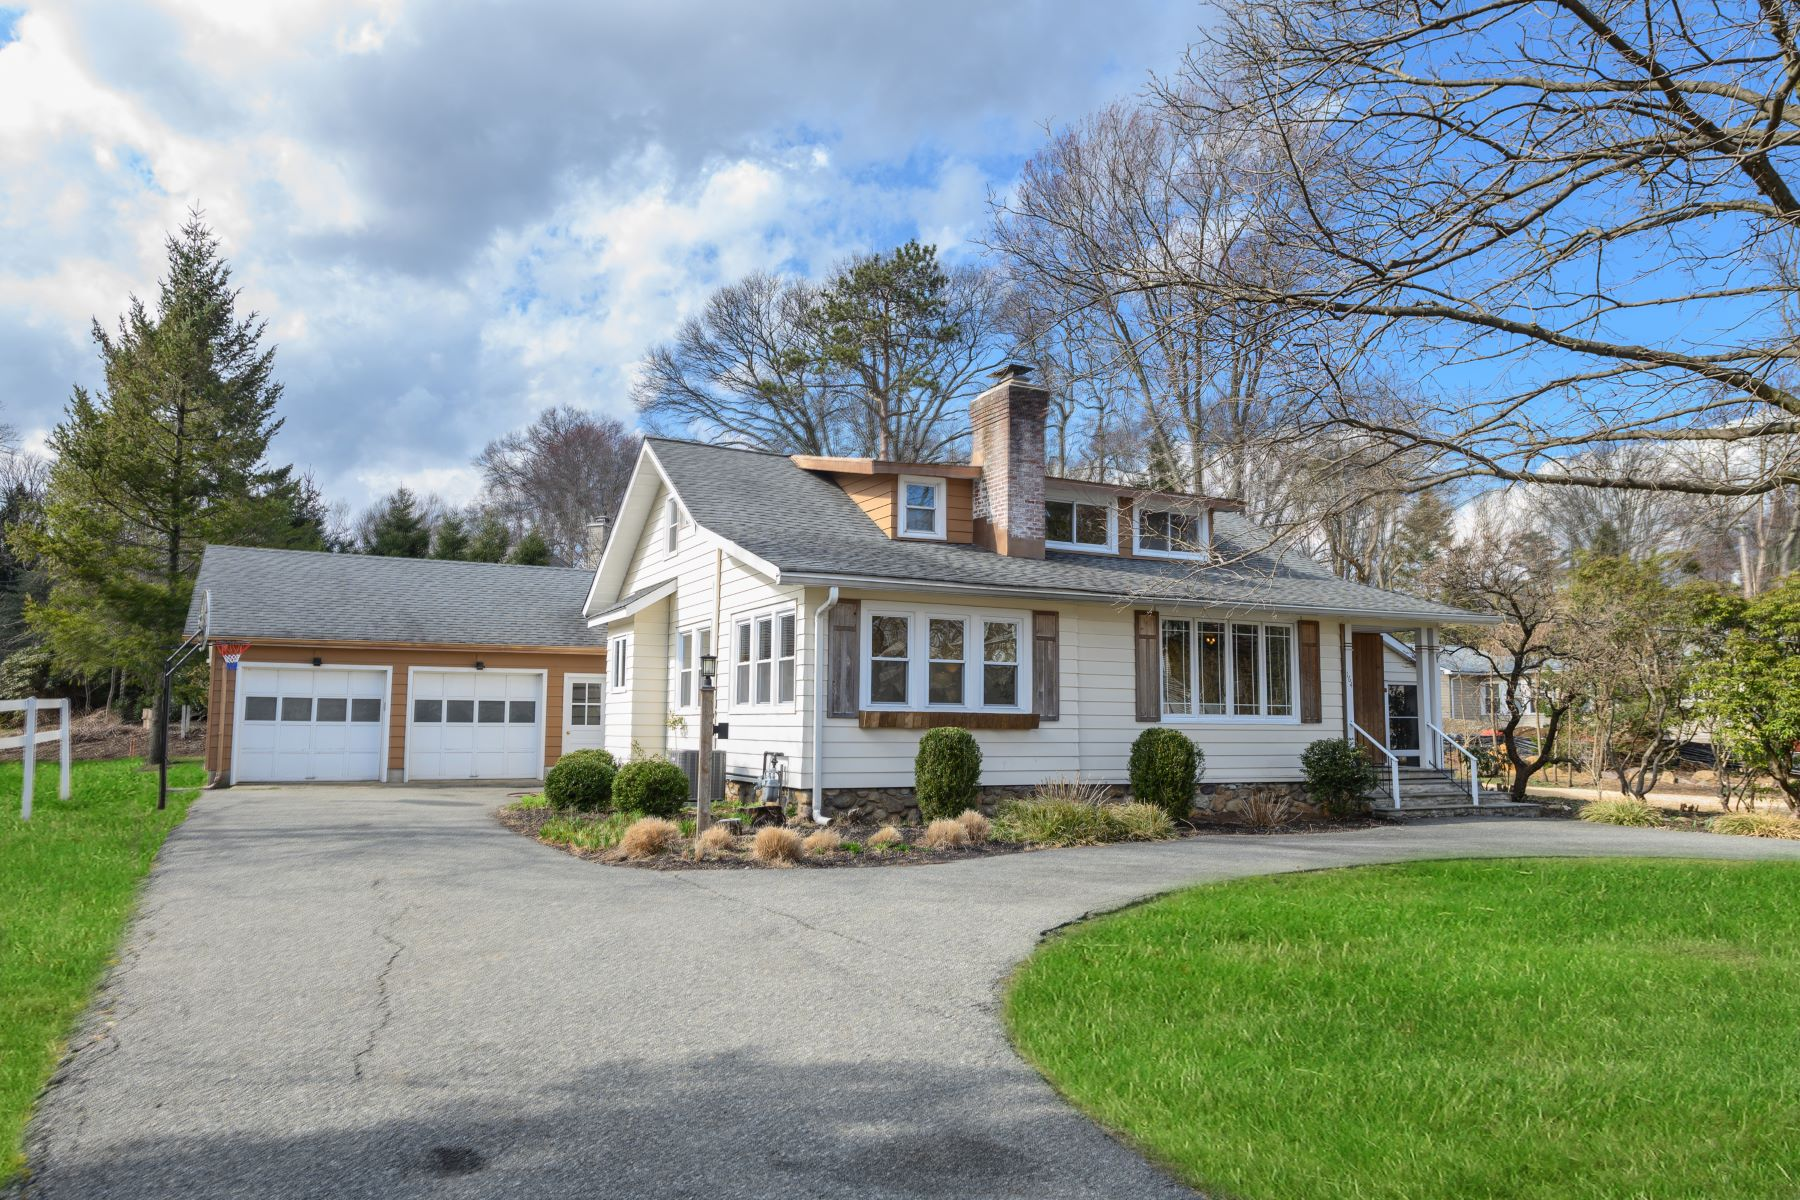 Single Family Homes for Sale at Charming Expanded Cape 164 Intervale Road Mountain Lakes, New Jersey 07046 United States